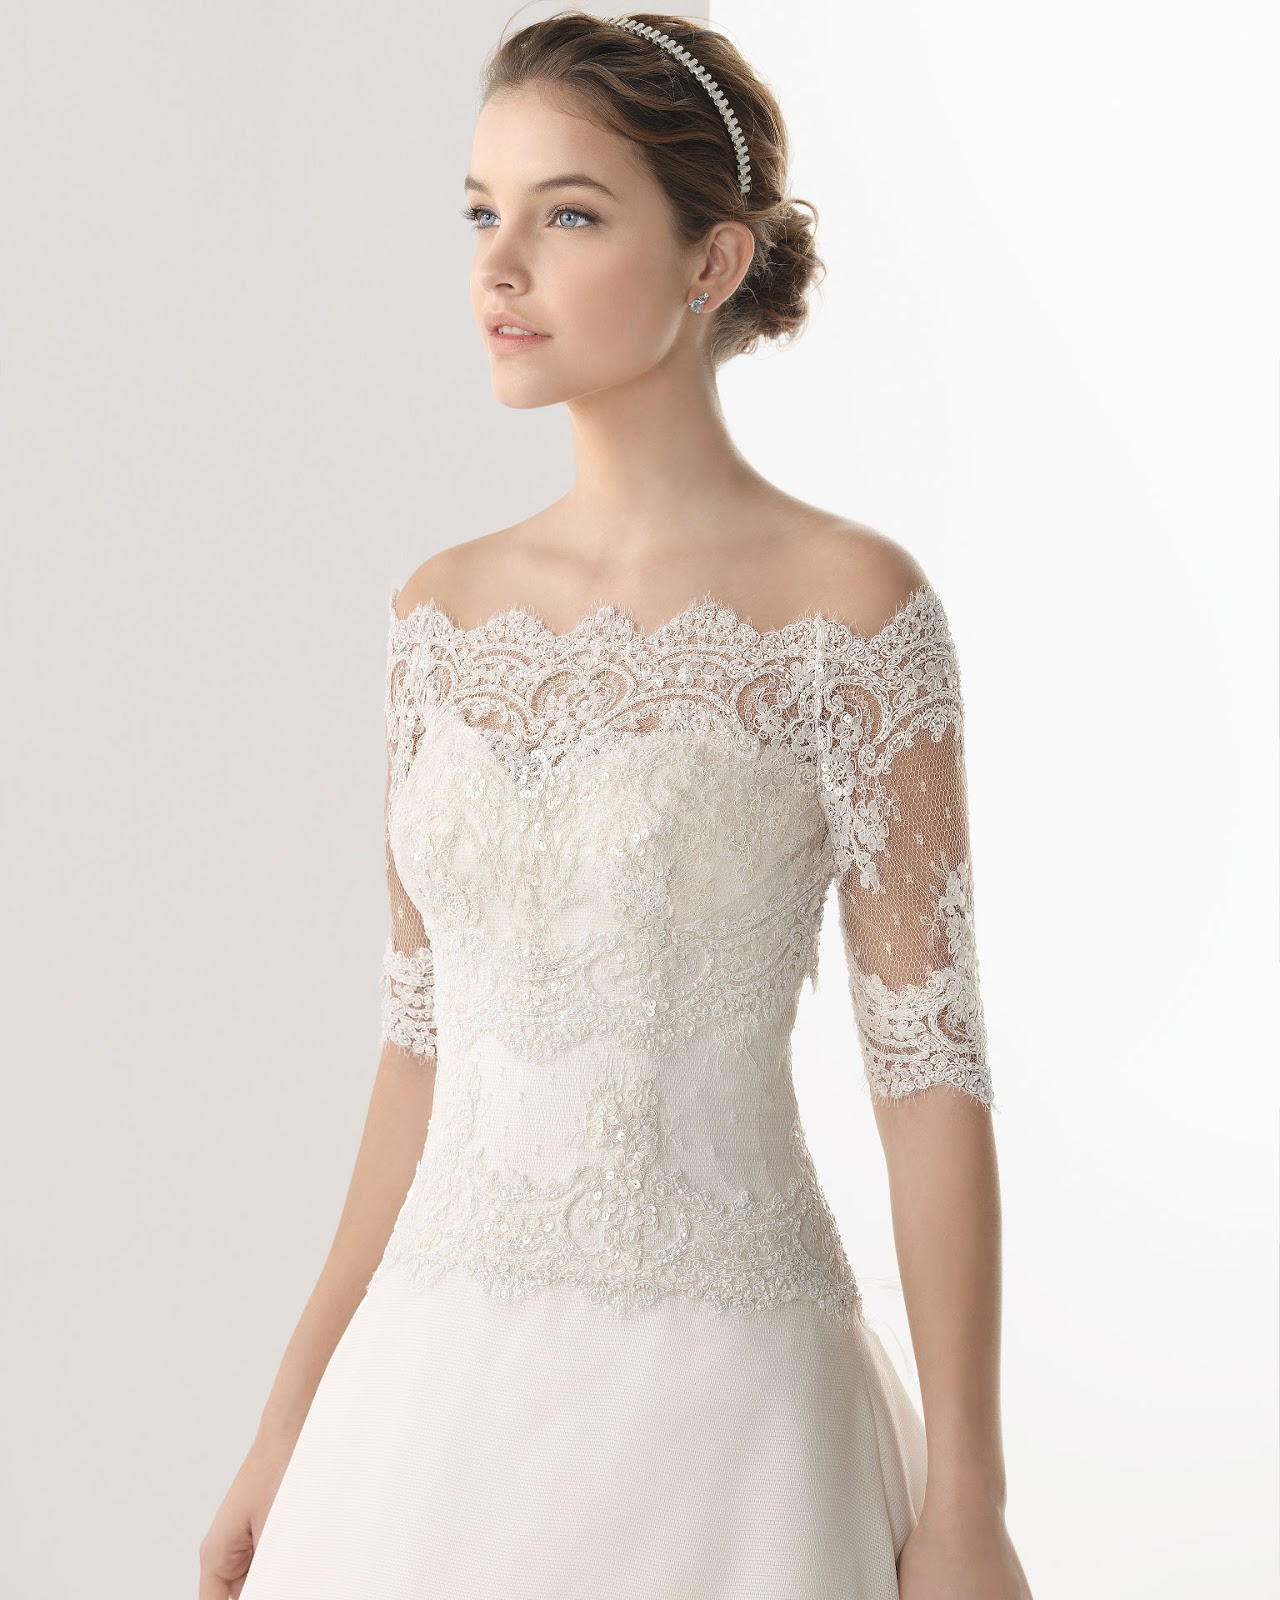 Wedding Dress With Lace Sleeves : Dressybridal wedding dresses with lace long sleeves and